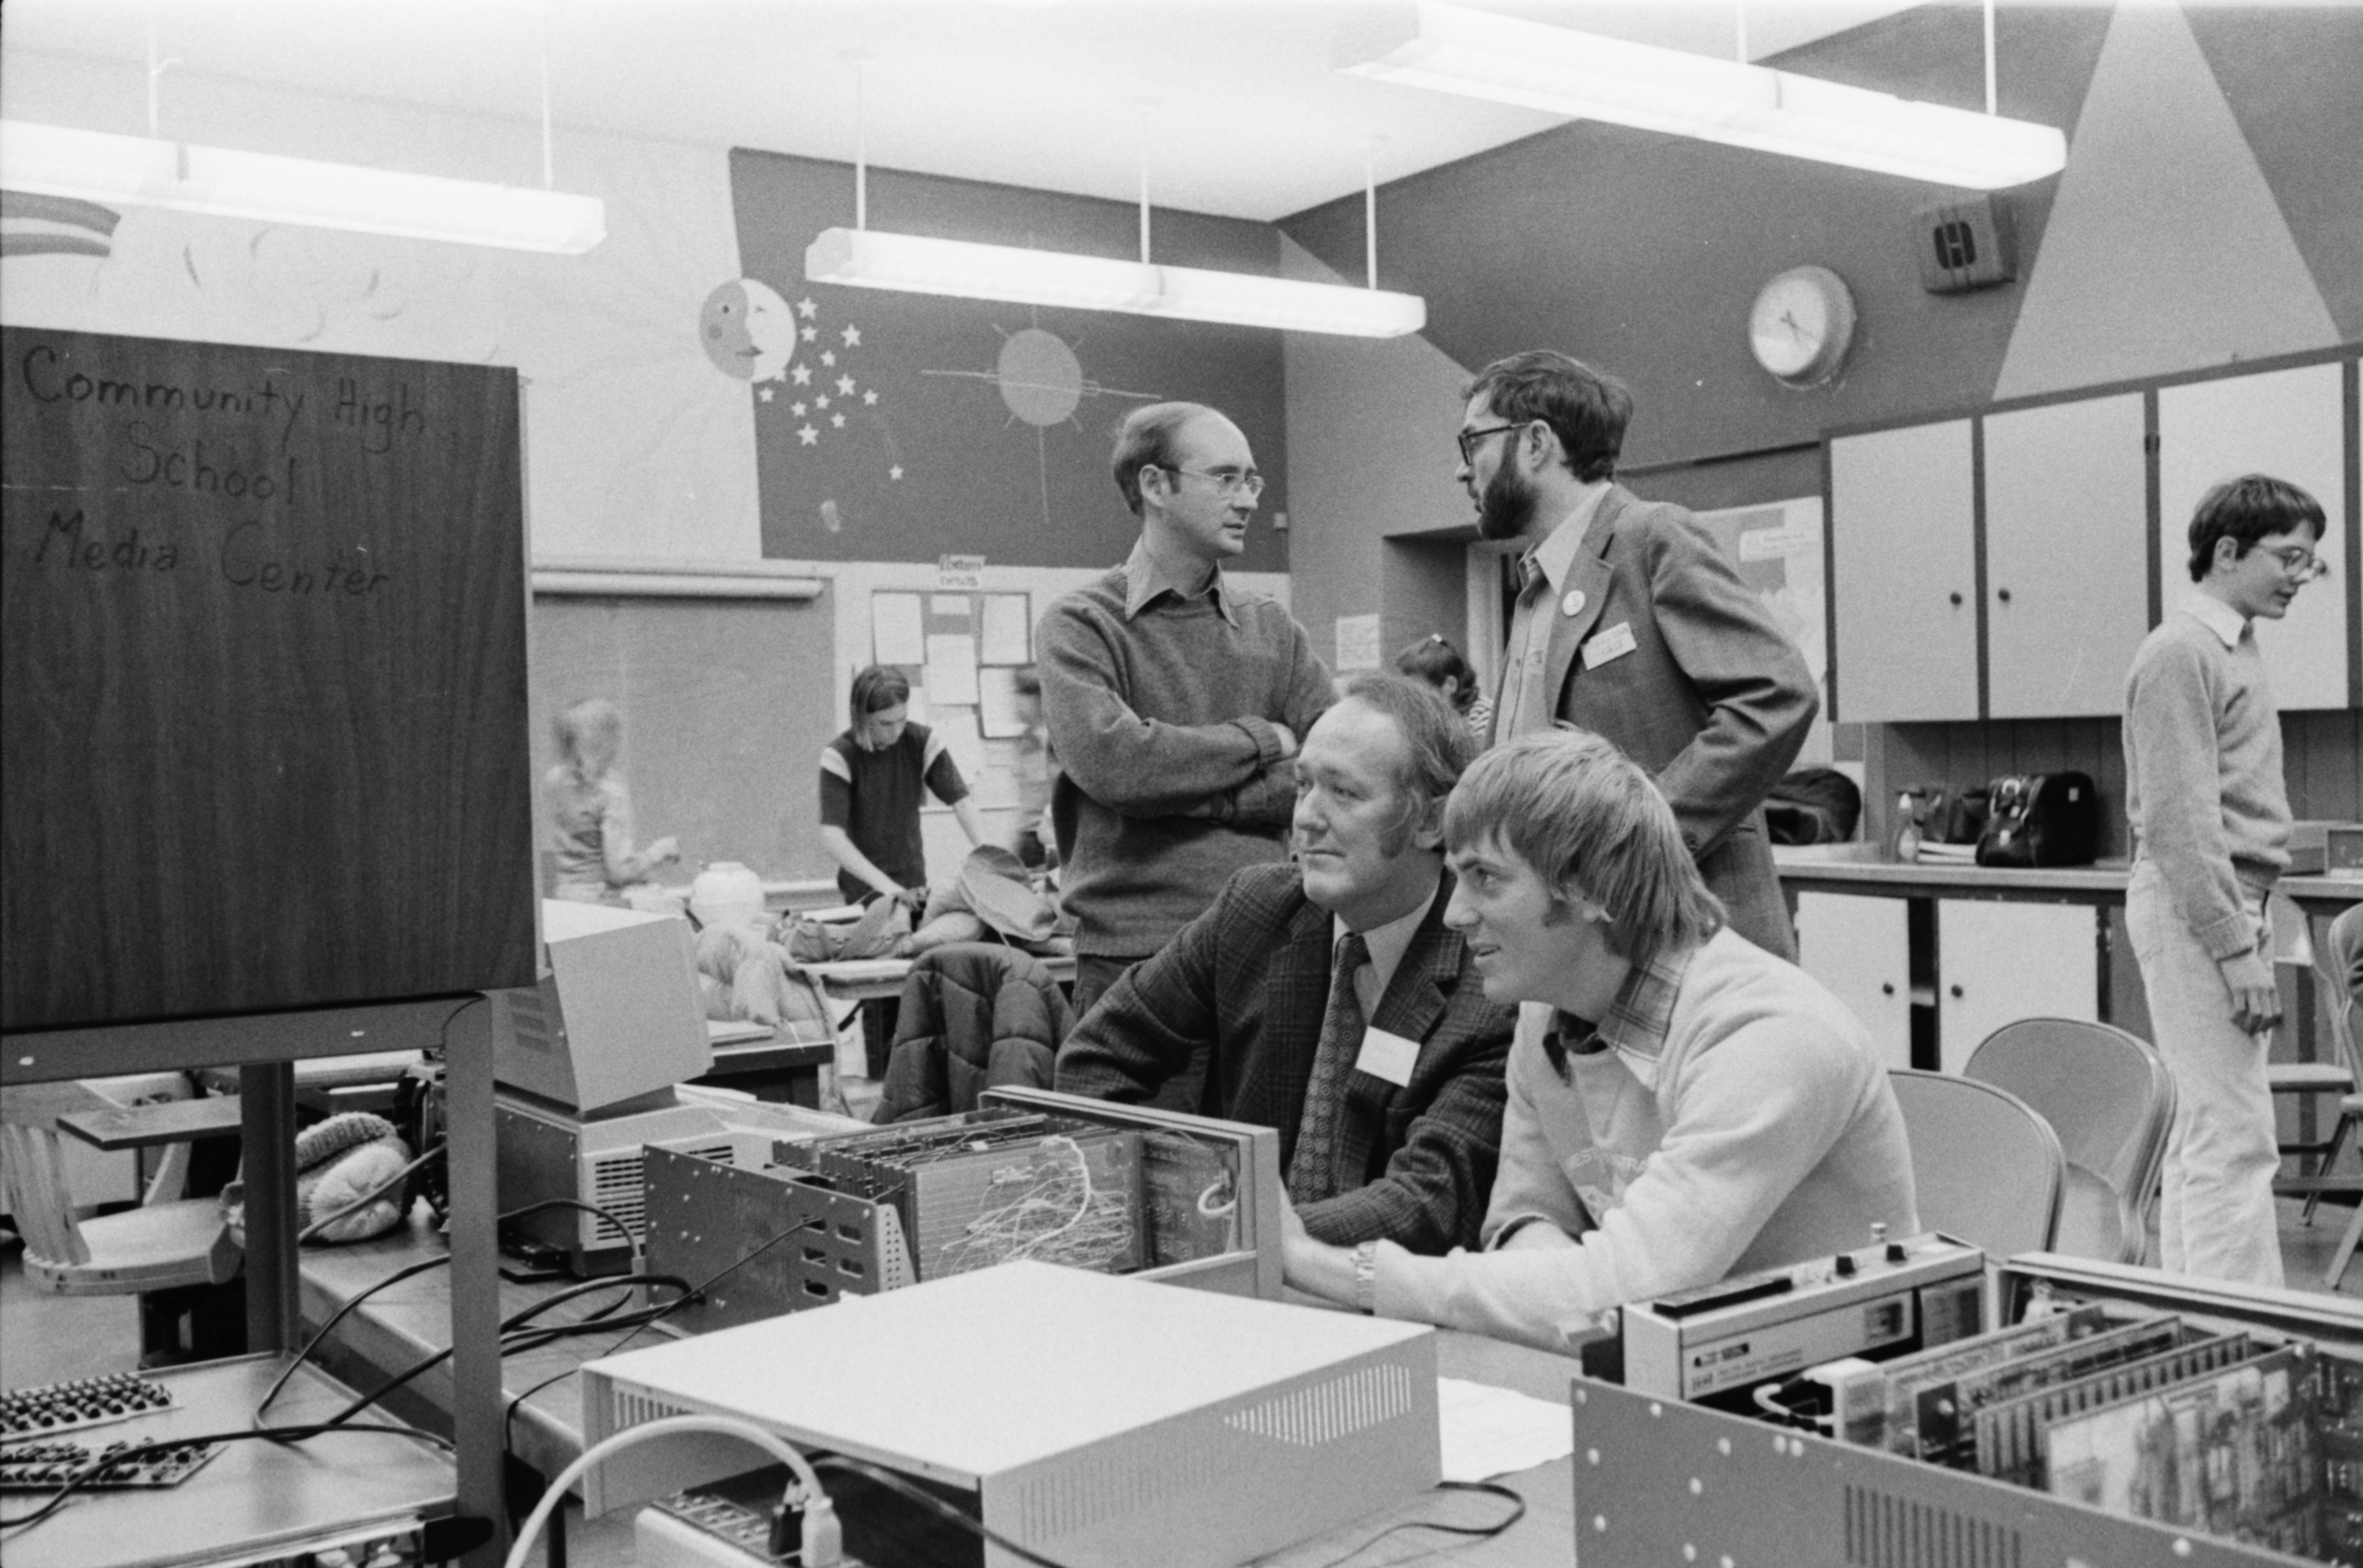 Australian Computer Experts Visit Community High School Media Center, February 1977 image